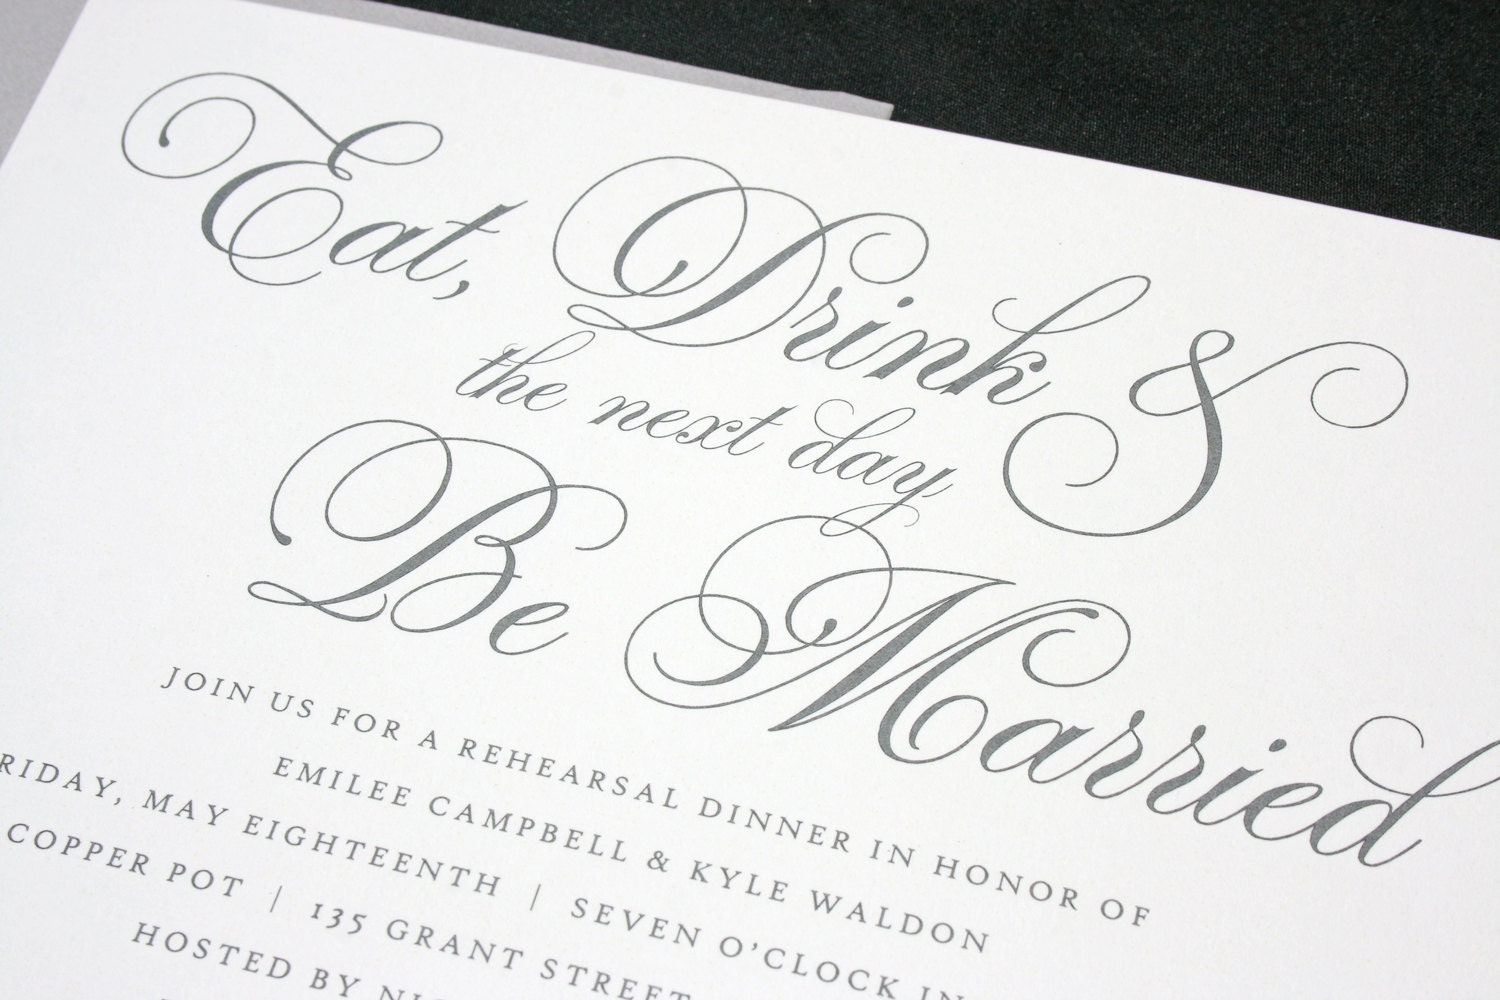 Rehearsal Dinner Invitations Eat Drink and be Married Design